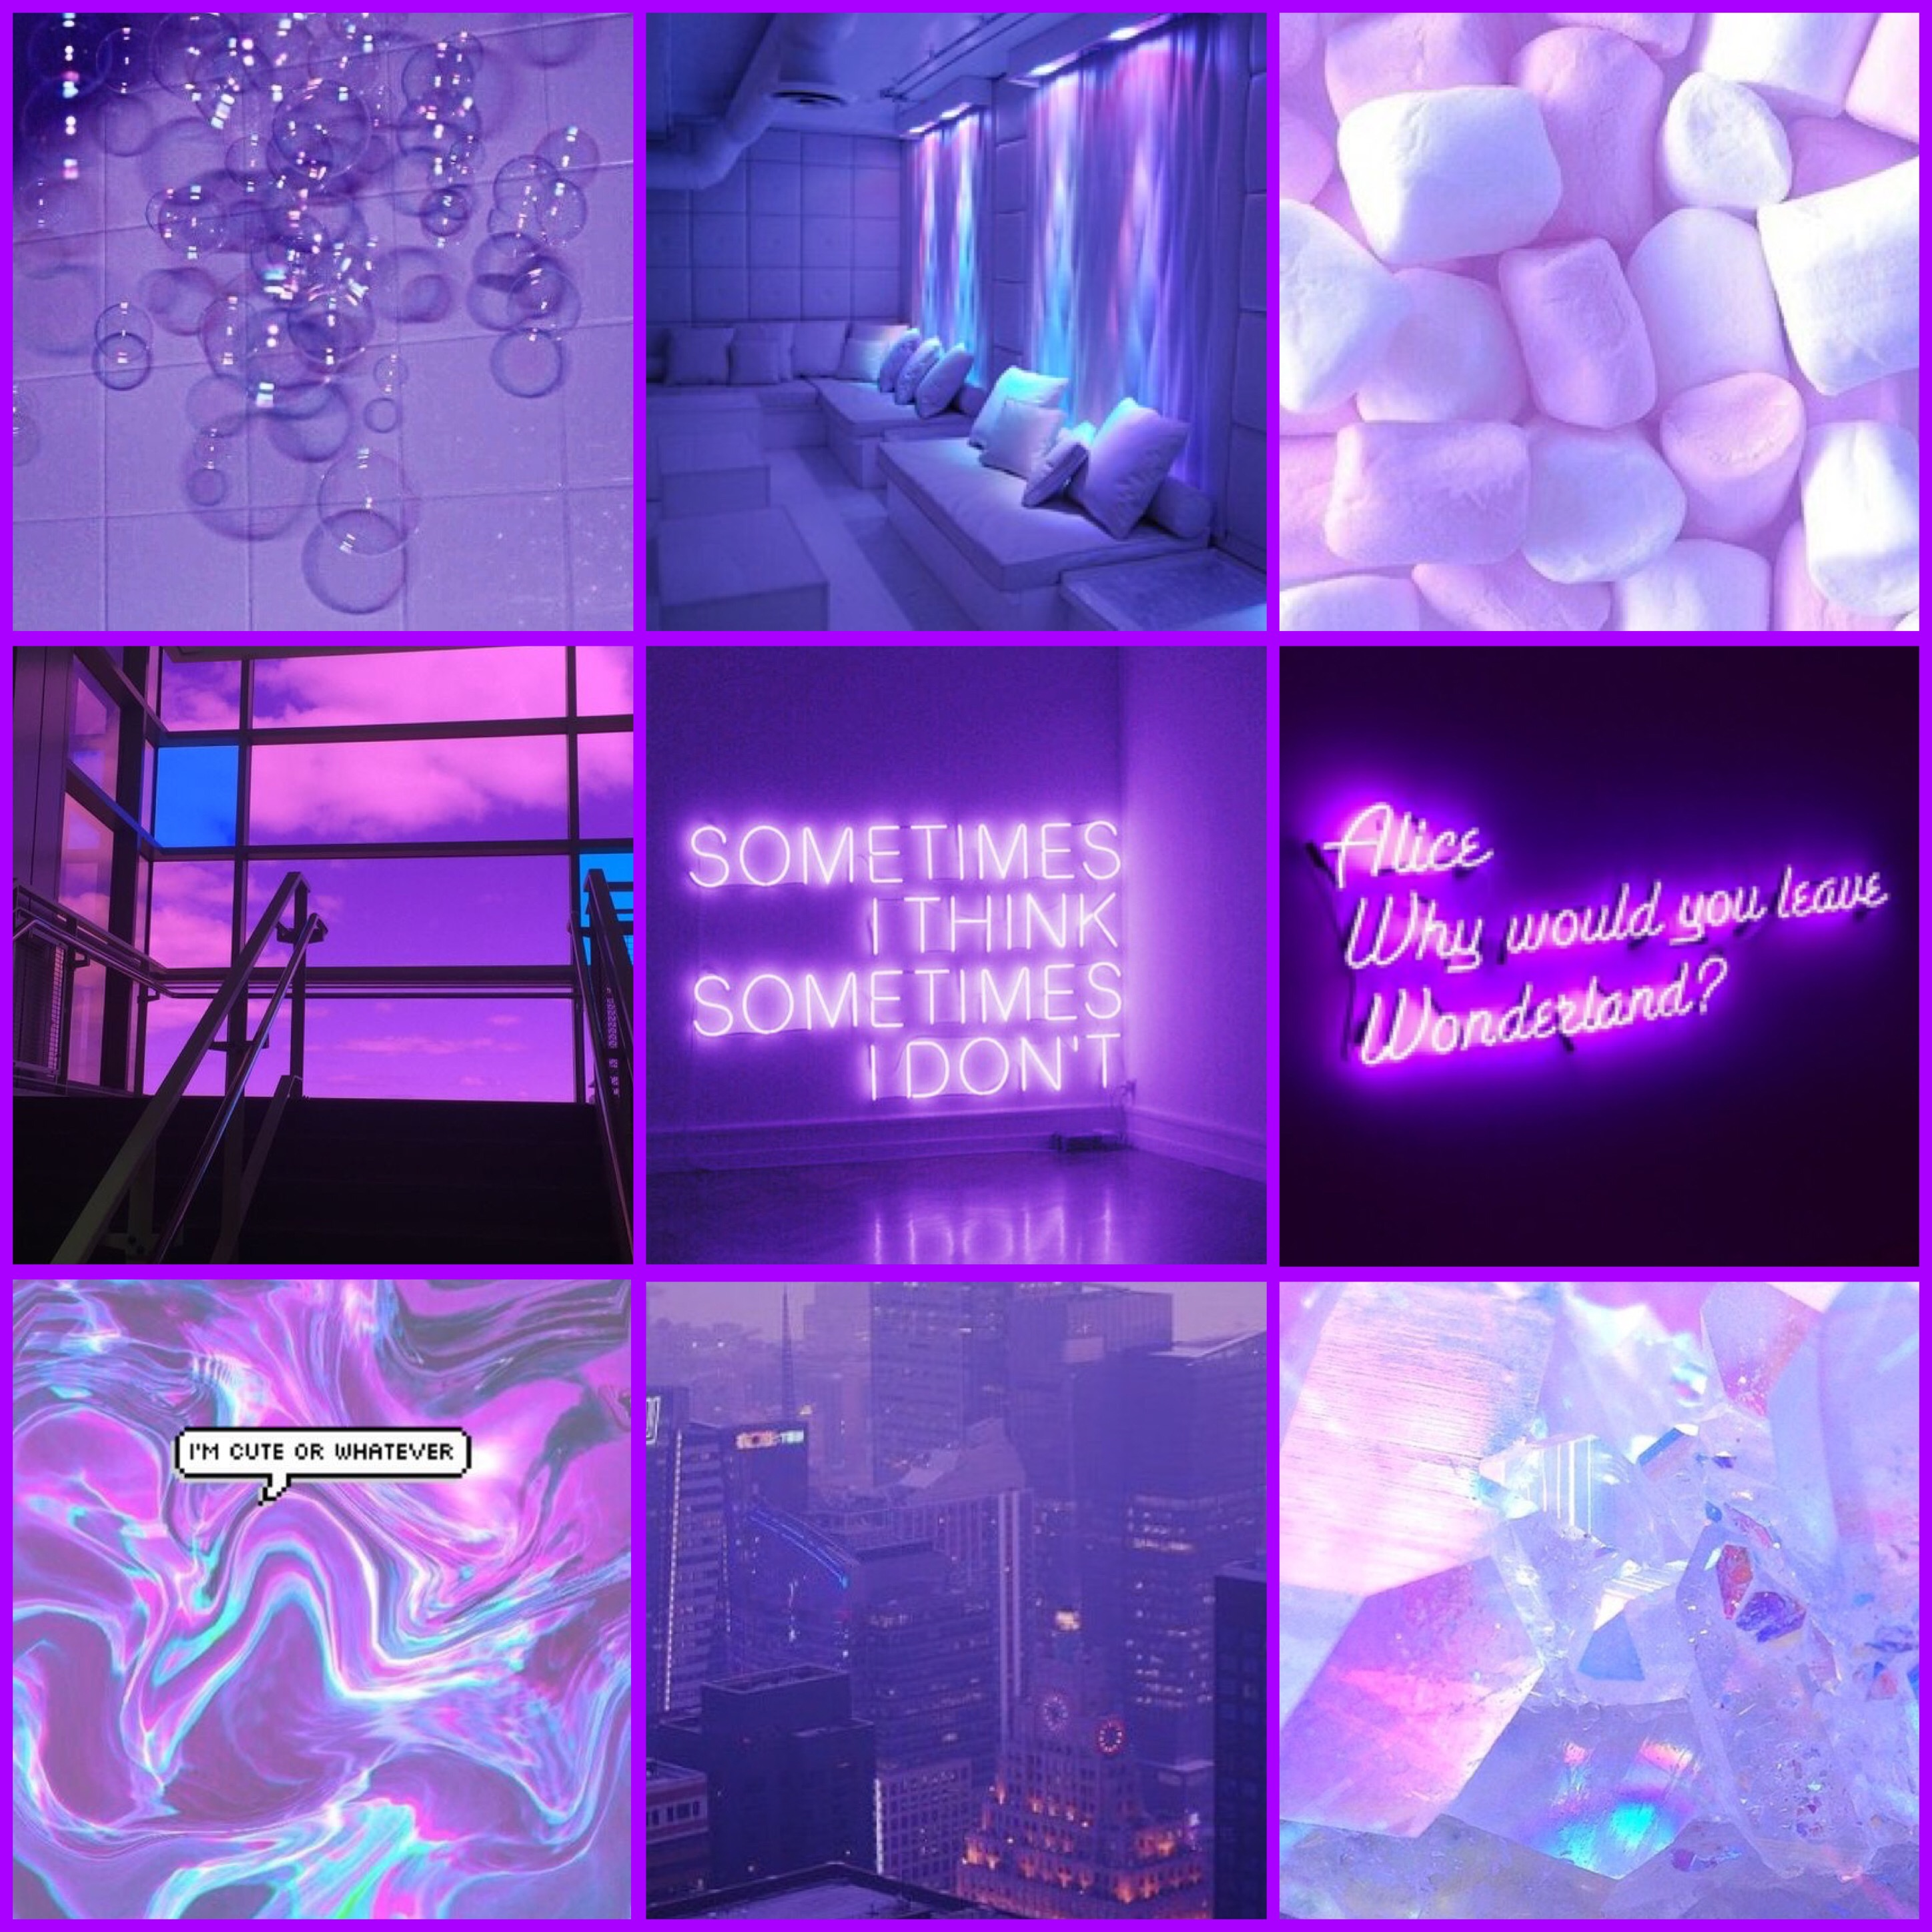 Tons of awesome purple aesthetic collage wallpapers to download for free. FreeToEdit aesthetic purple grid collage edit edits pic...